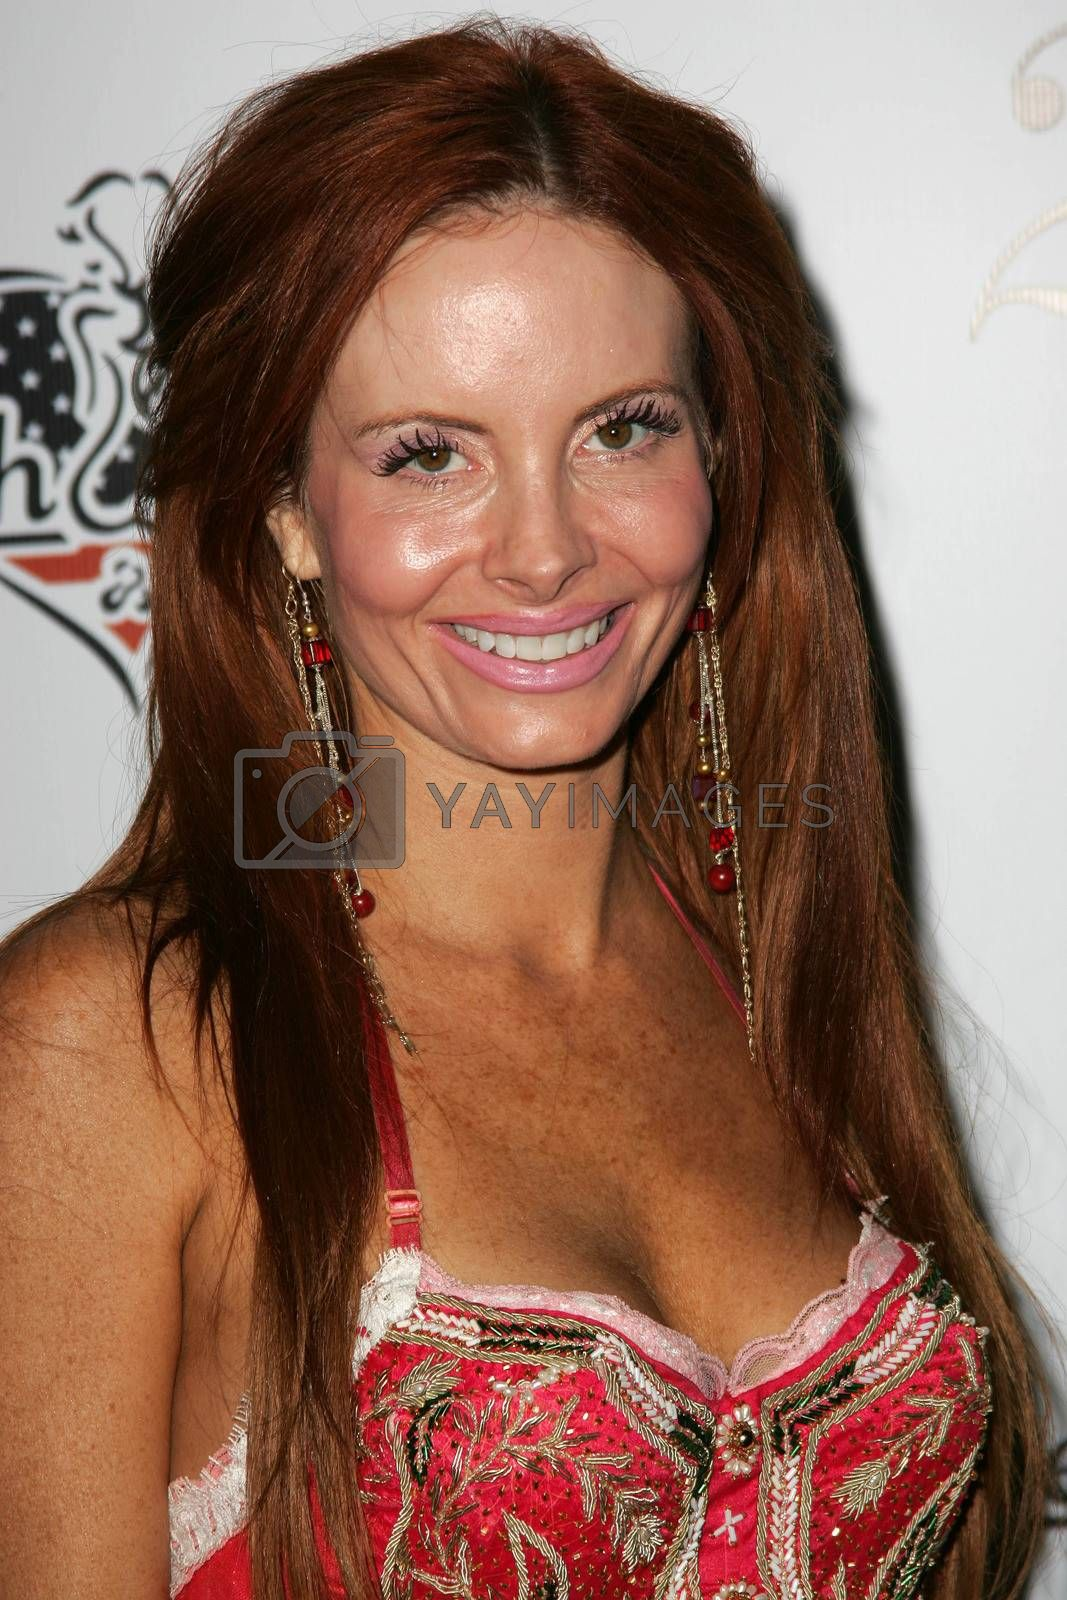 Phoebe Price at Bench Warmer's 2nd Annual 4th of July Celebration, The Day After, Hollywood, CA 06-29-05